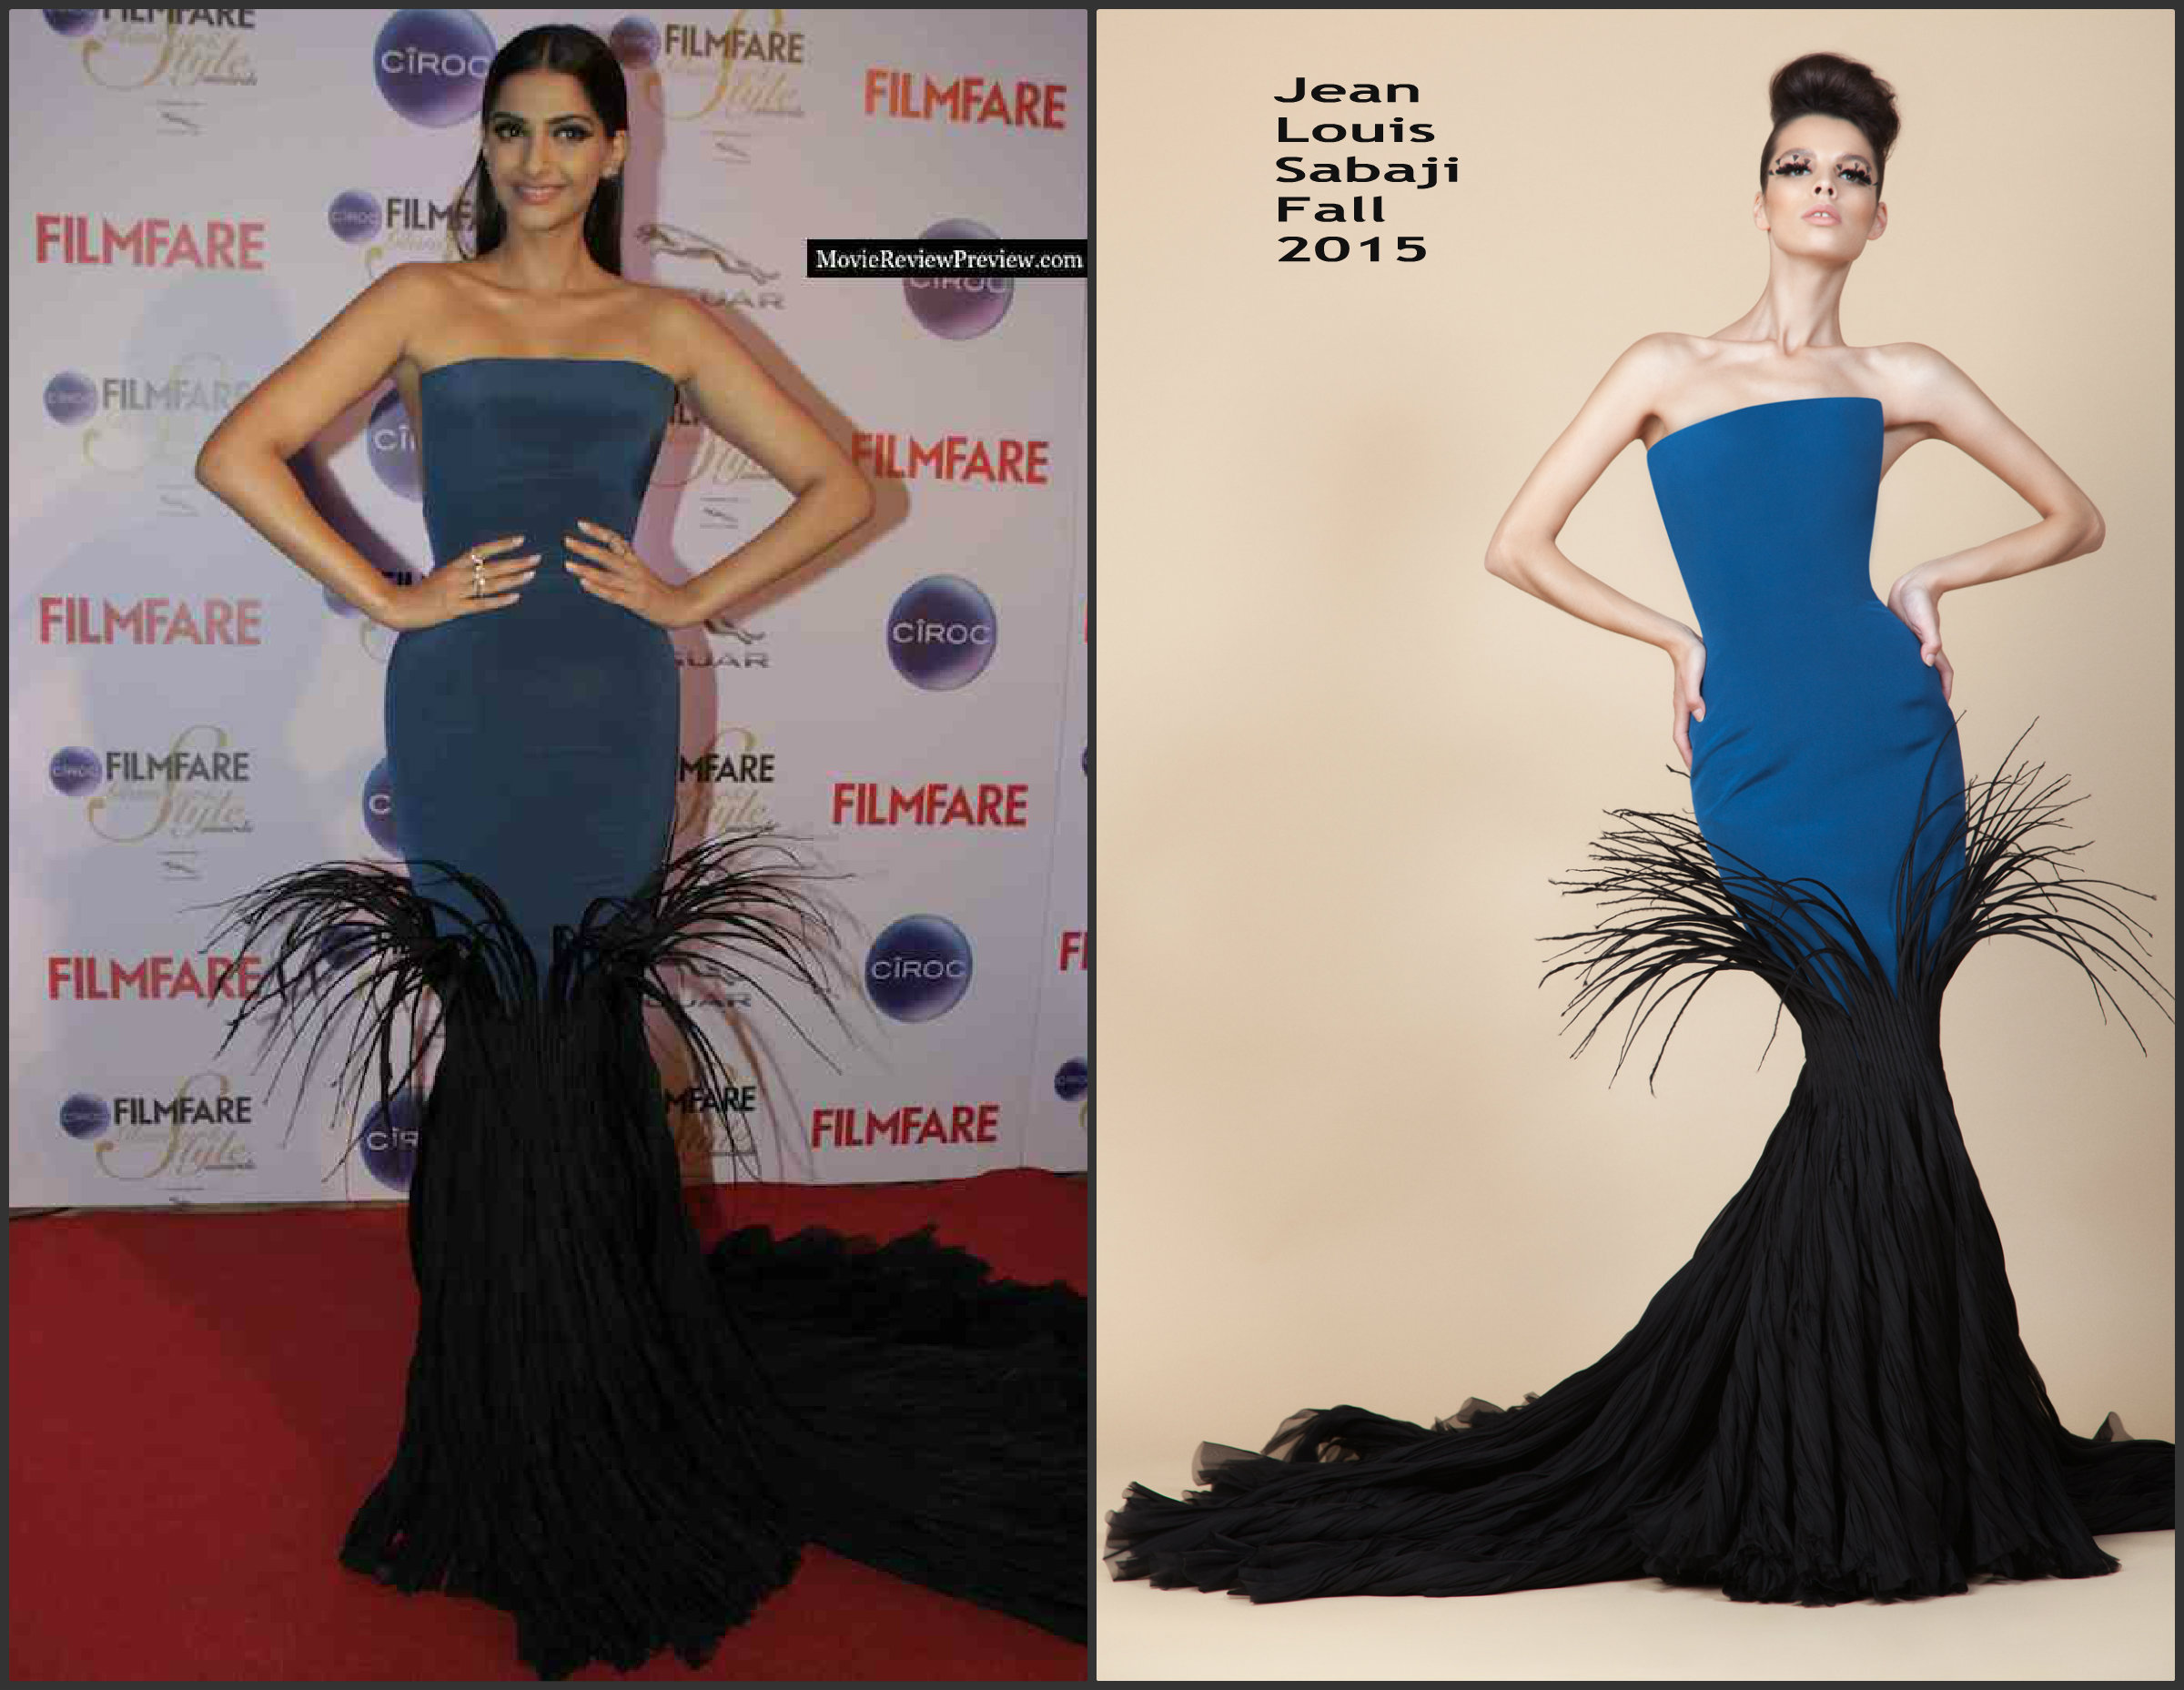 Sonam-Kapoor-in-Jean-Louis-Sabaji-at-the-2015-FilmfARE-Awards